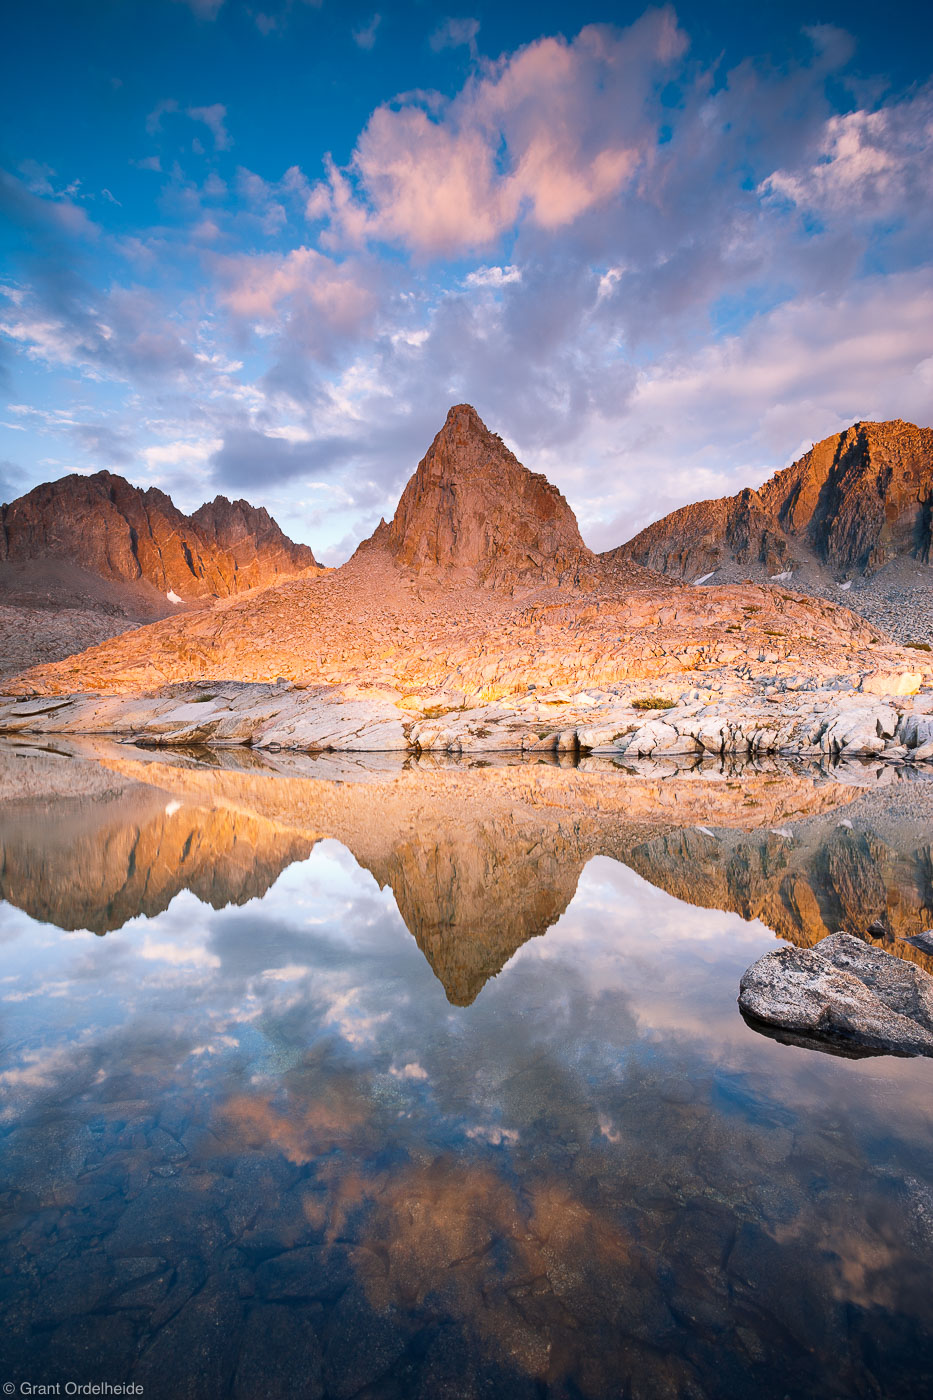 dusy, basin, reflection, isosceles, peak, palisades, alpine, tarn, high, eastern sierra, california, kings canyon, natio, photo